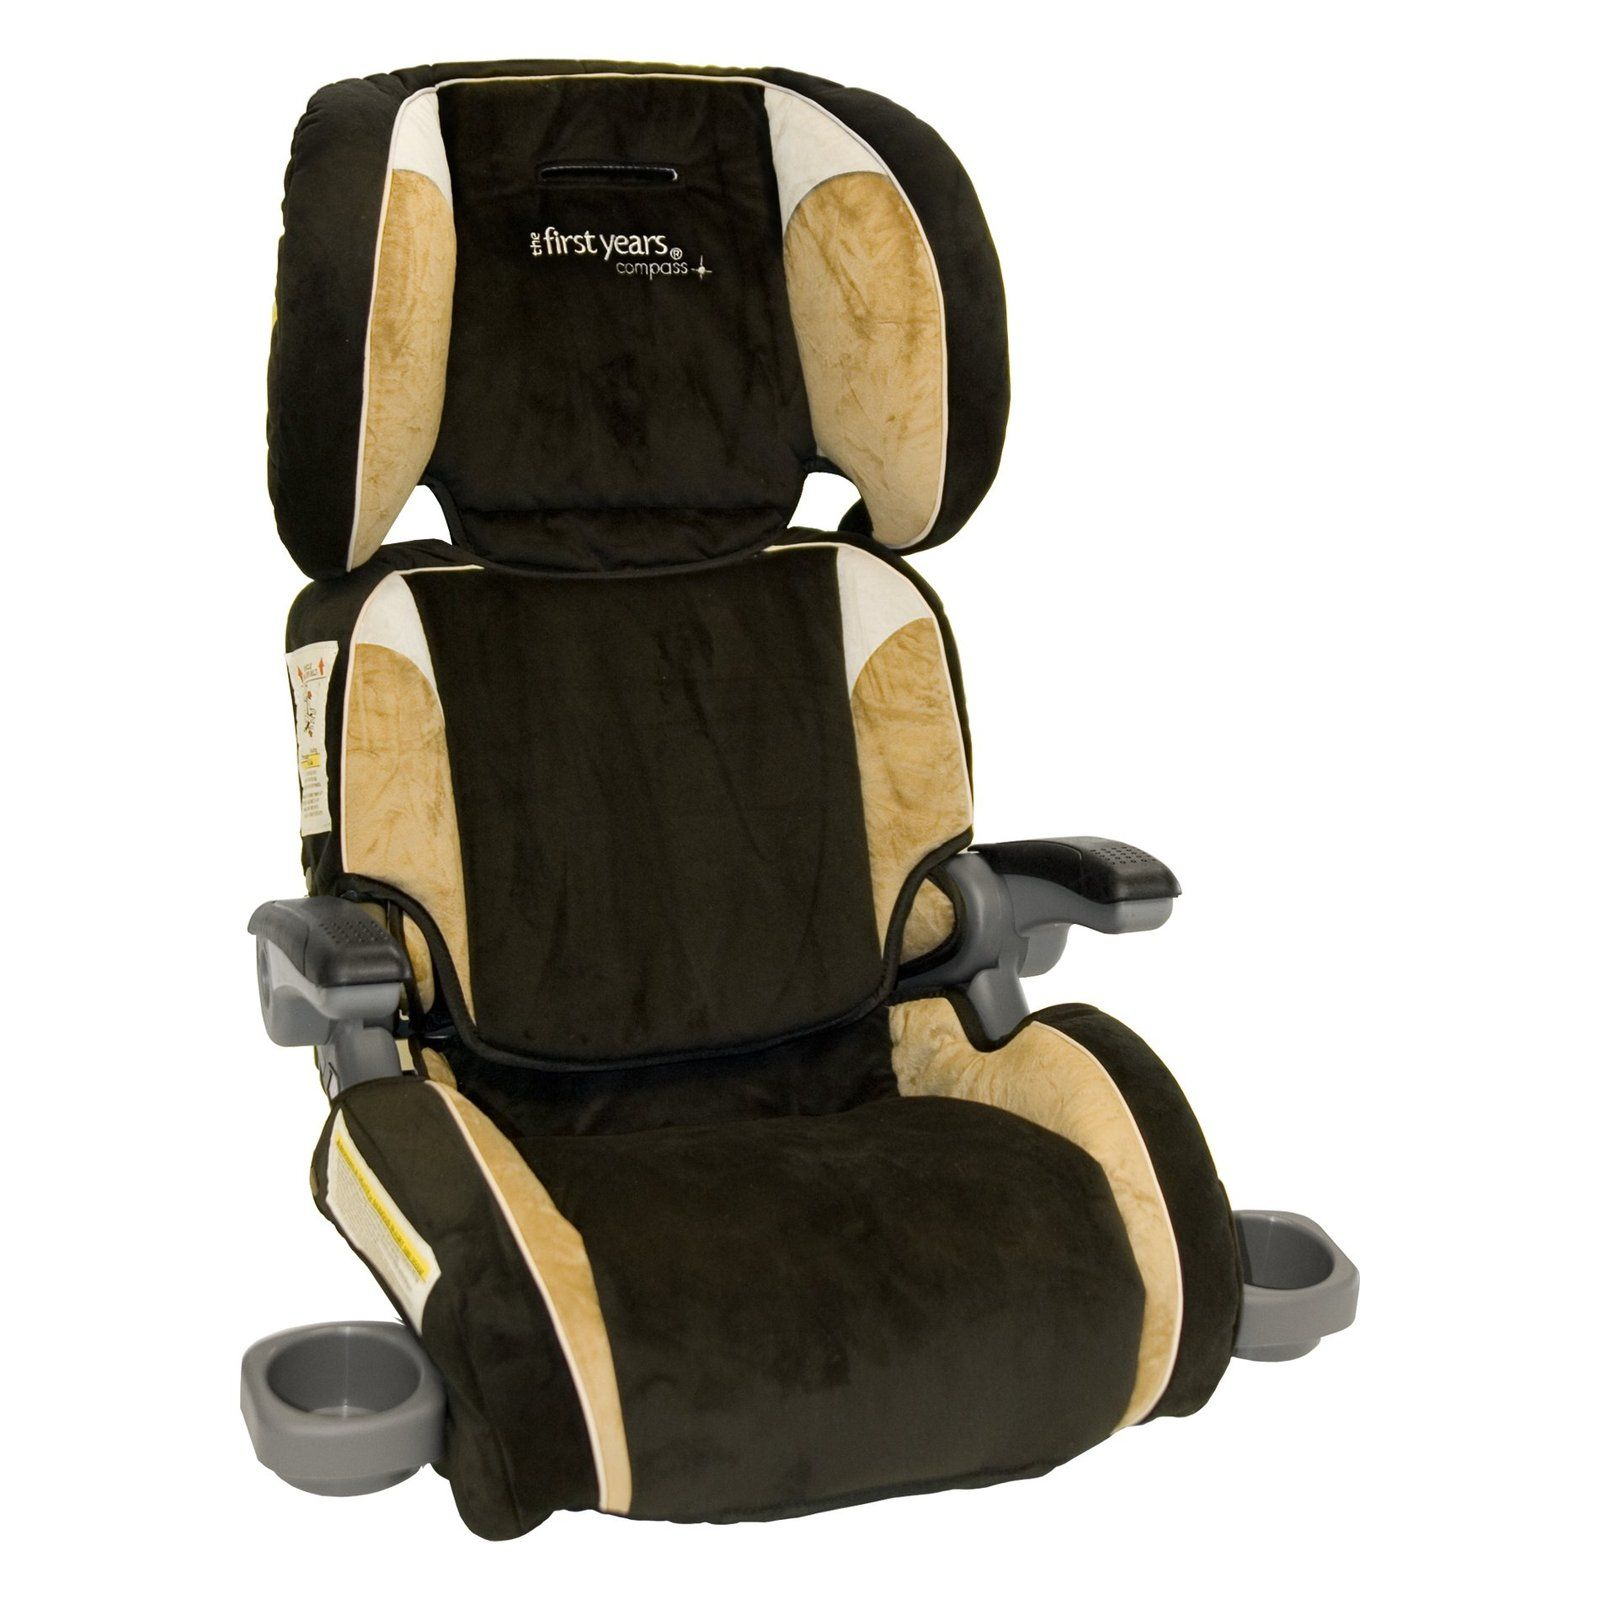 The First Years Compass B530 Booster Car Seat